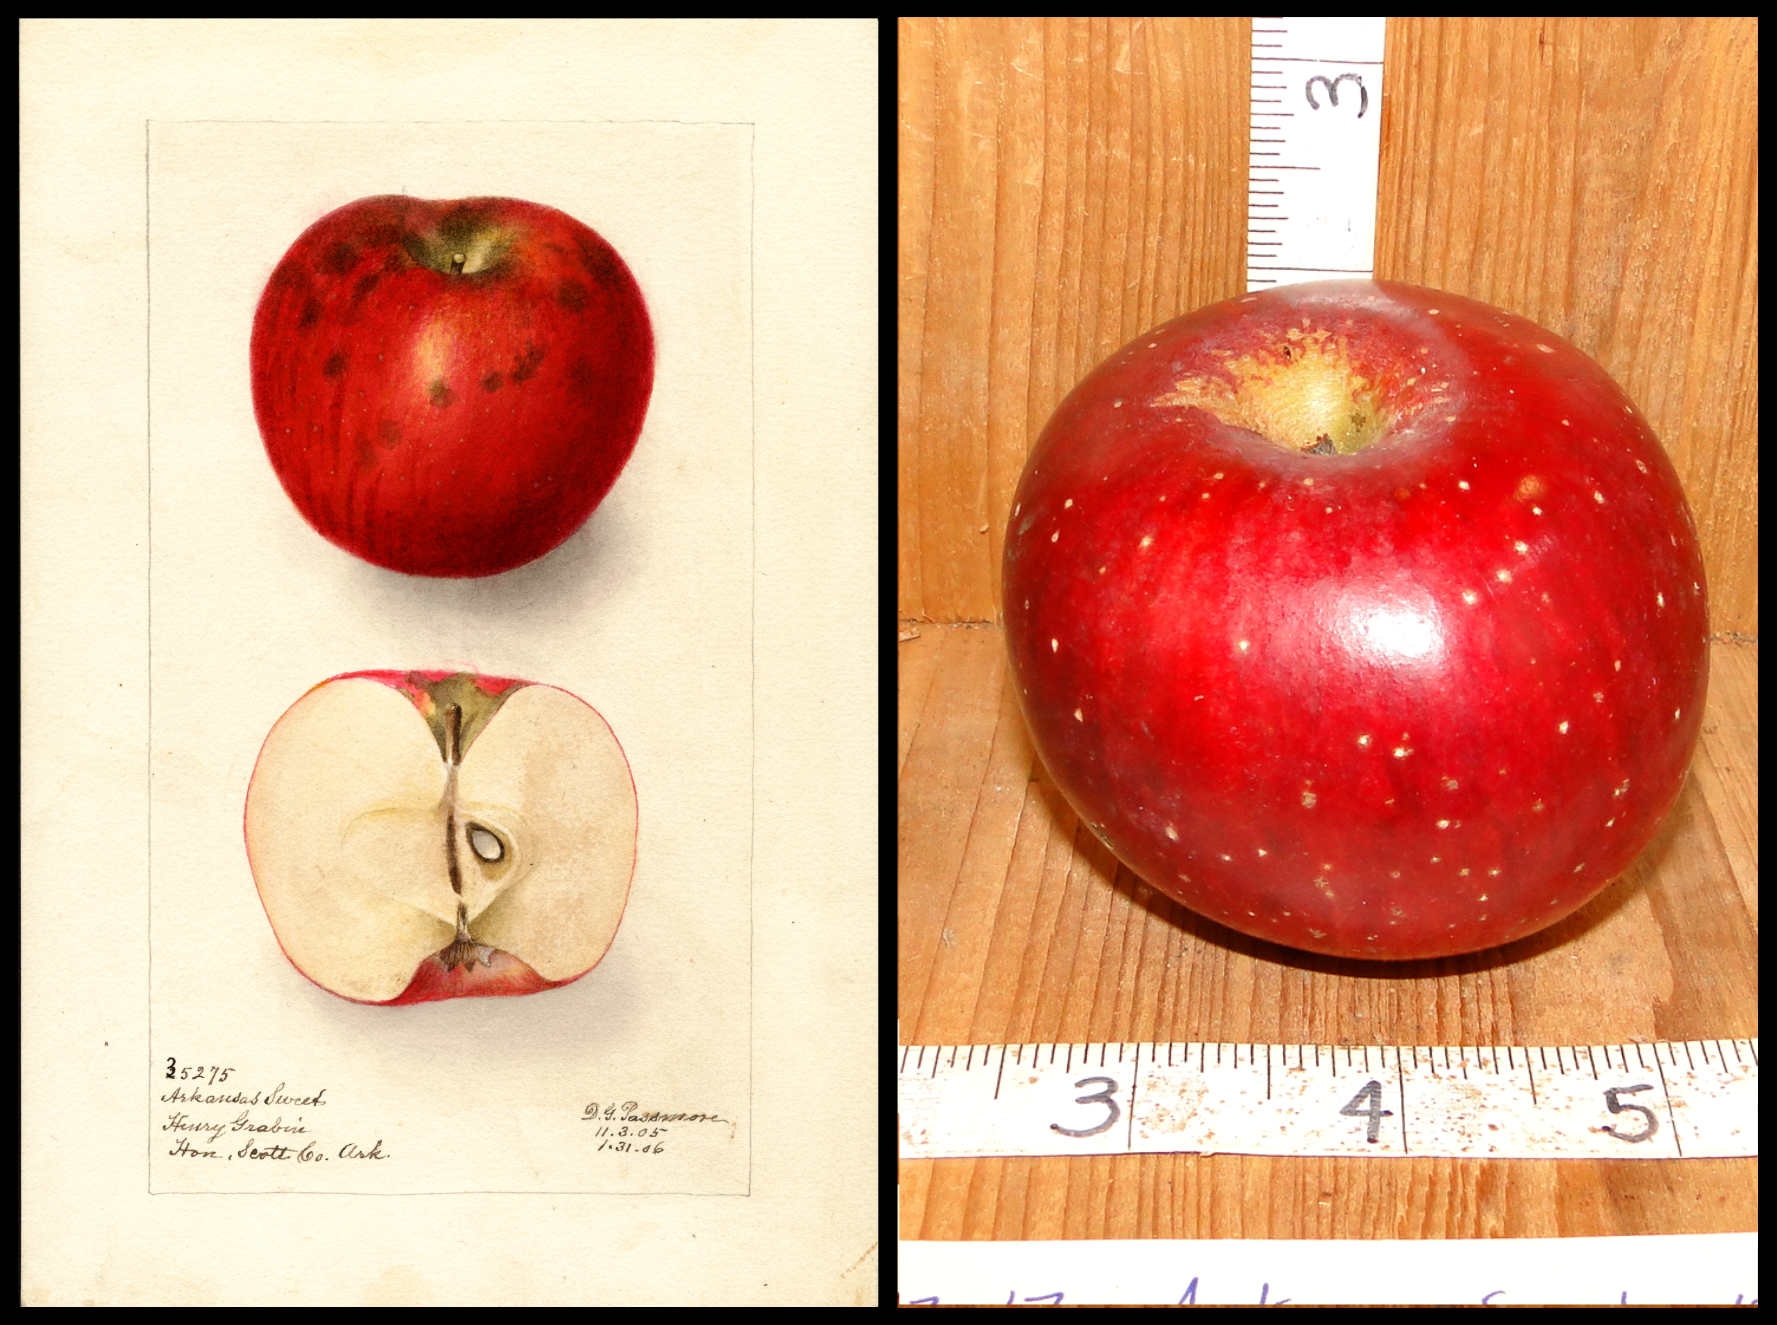 a mottled red and dark red apple with prominent white dots